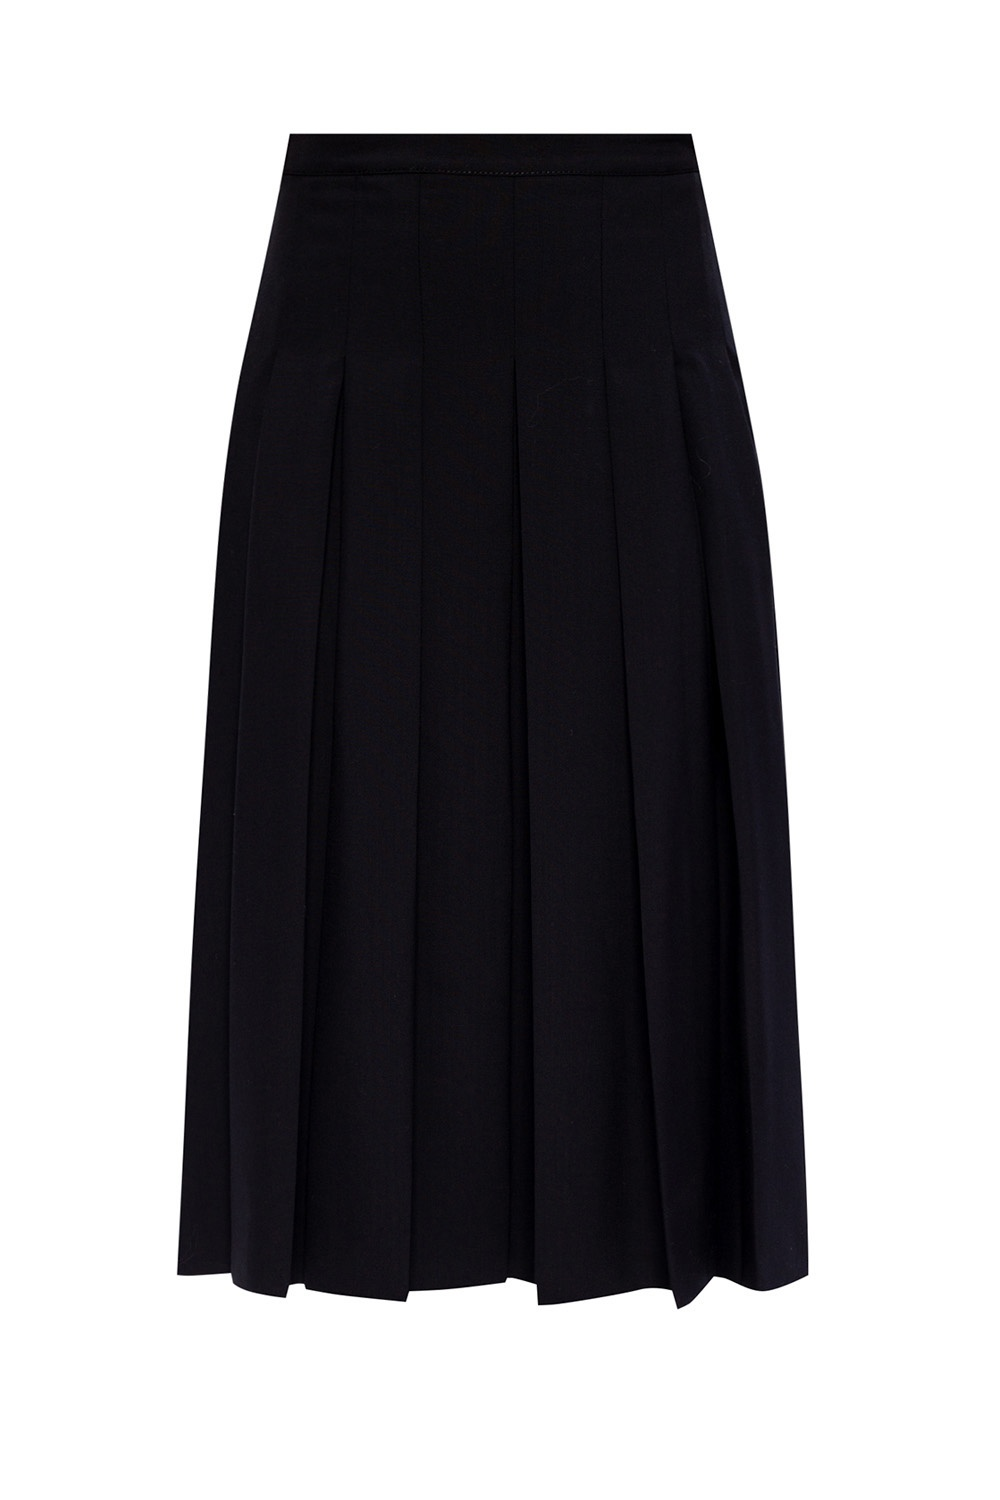 Marni Pleated front skirt